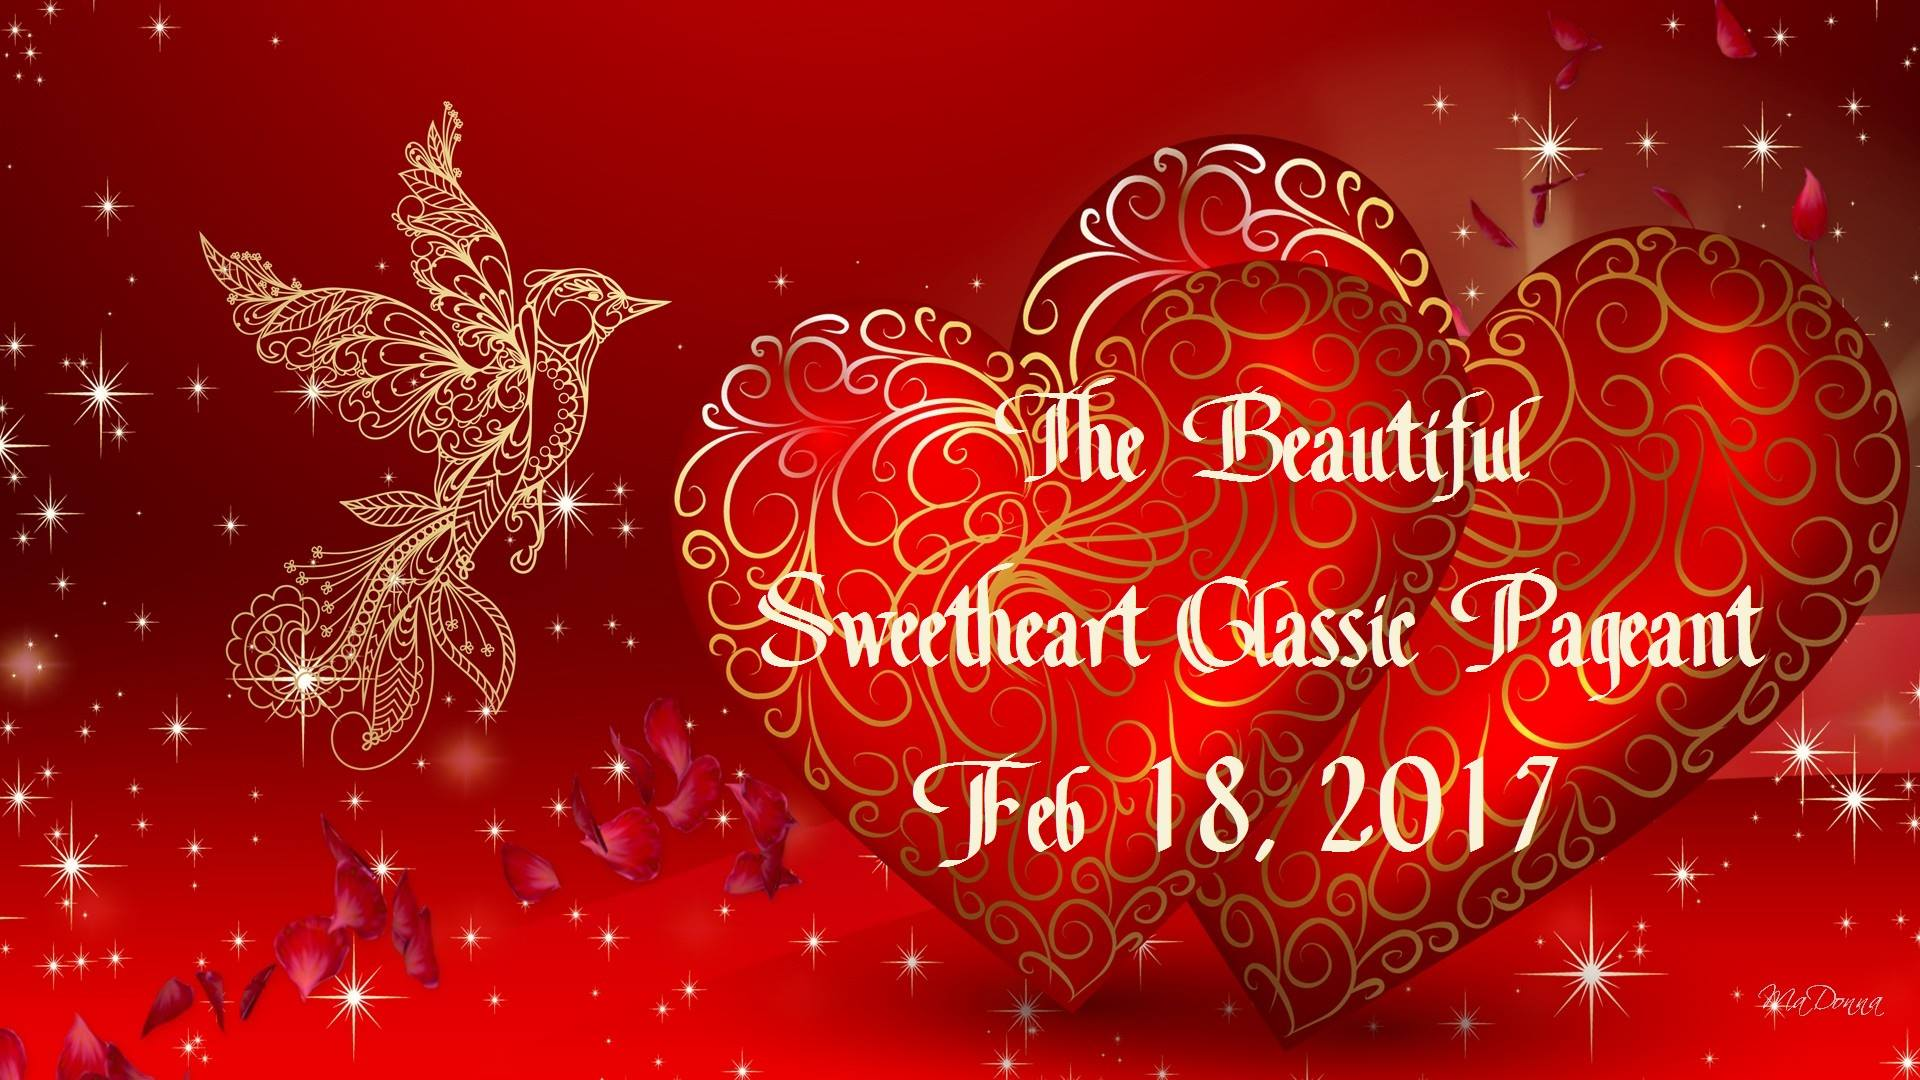 Beautiful Sweetheart Classic Pageant @ Byrum's Chapel, Portland TN